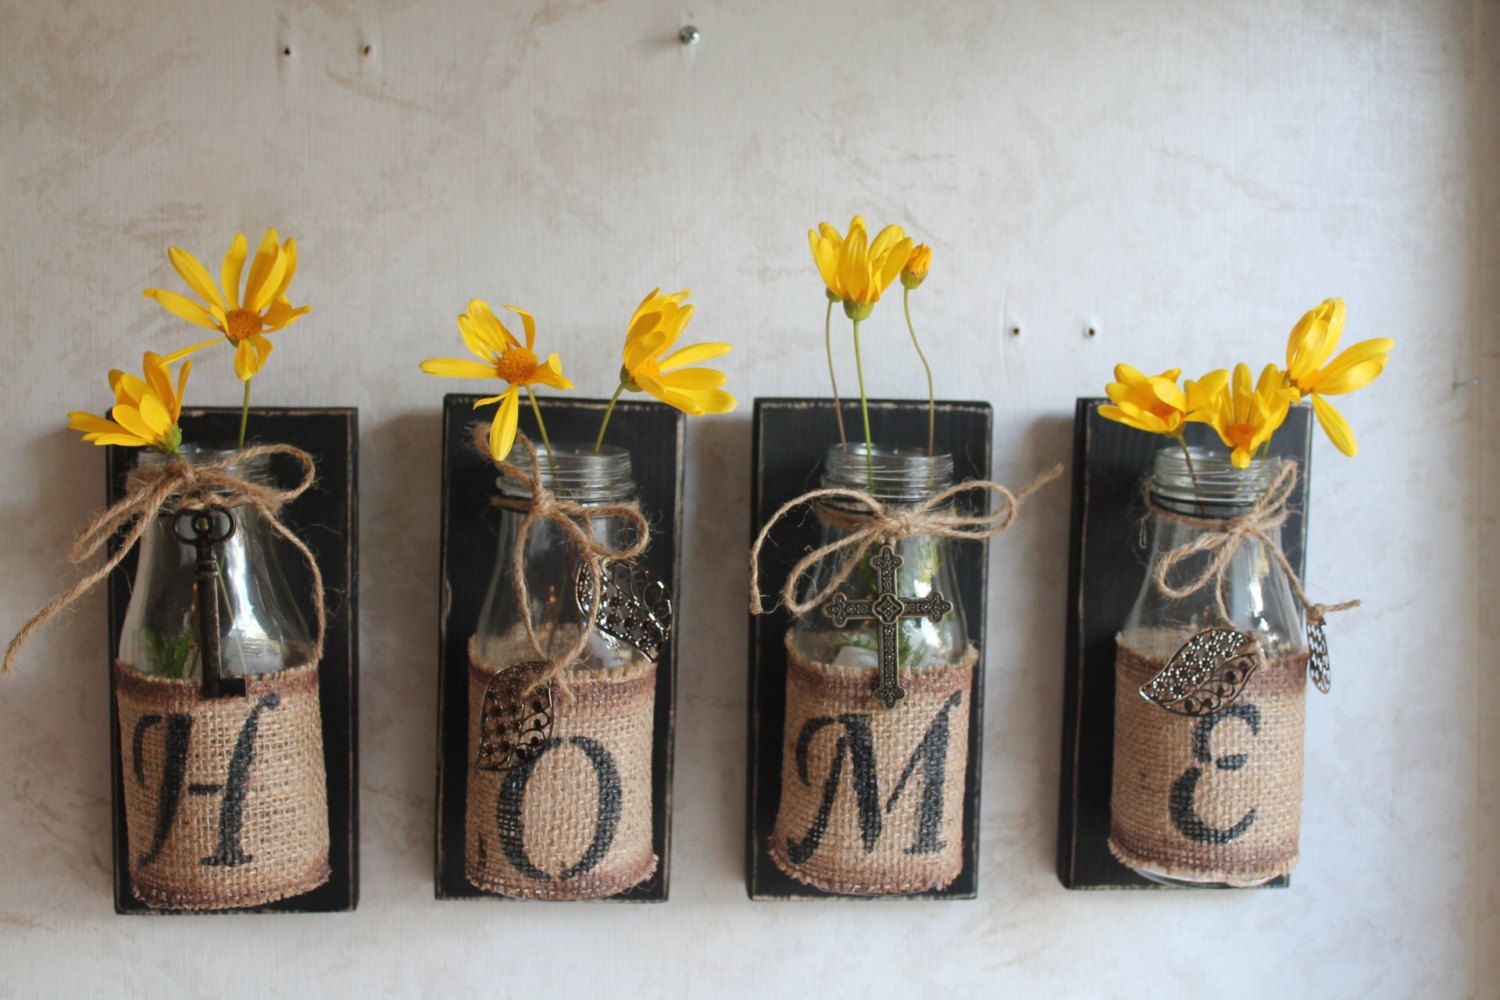 Home Wall Decor Set Of 4 Upcycled Bottles Home Decor Country Prim Country Decor